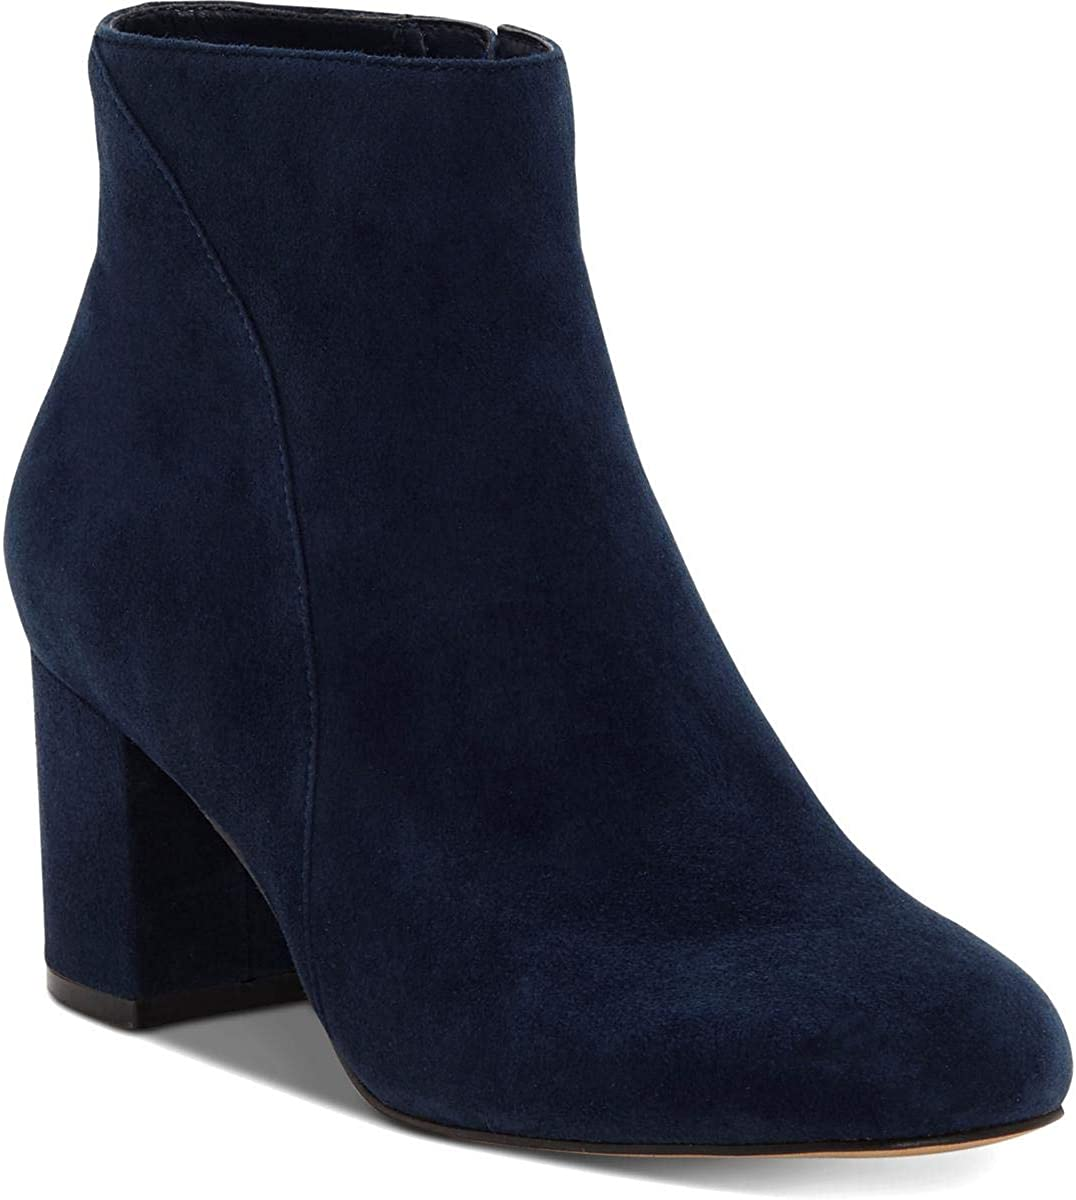 INC Womens Floriann Suede Booties Ankle Boots Navy 6 Medium (B,M)